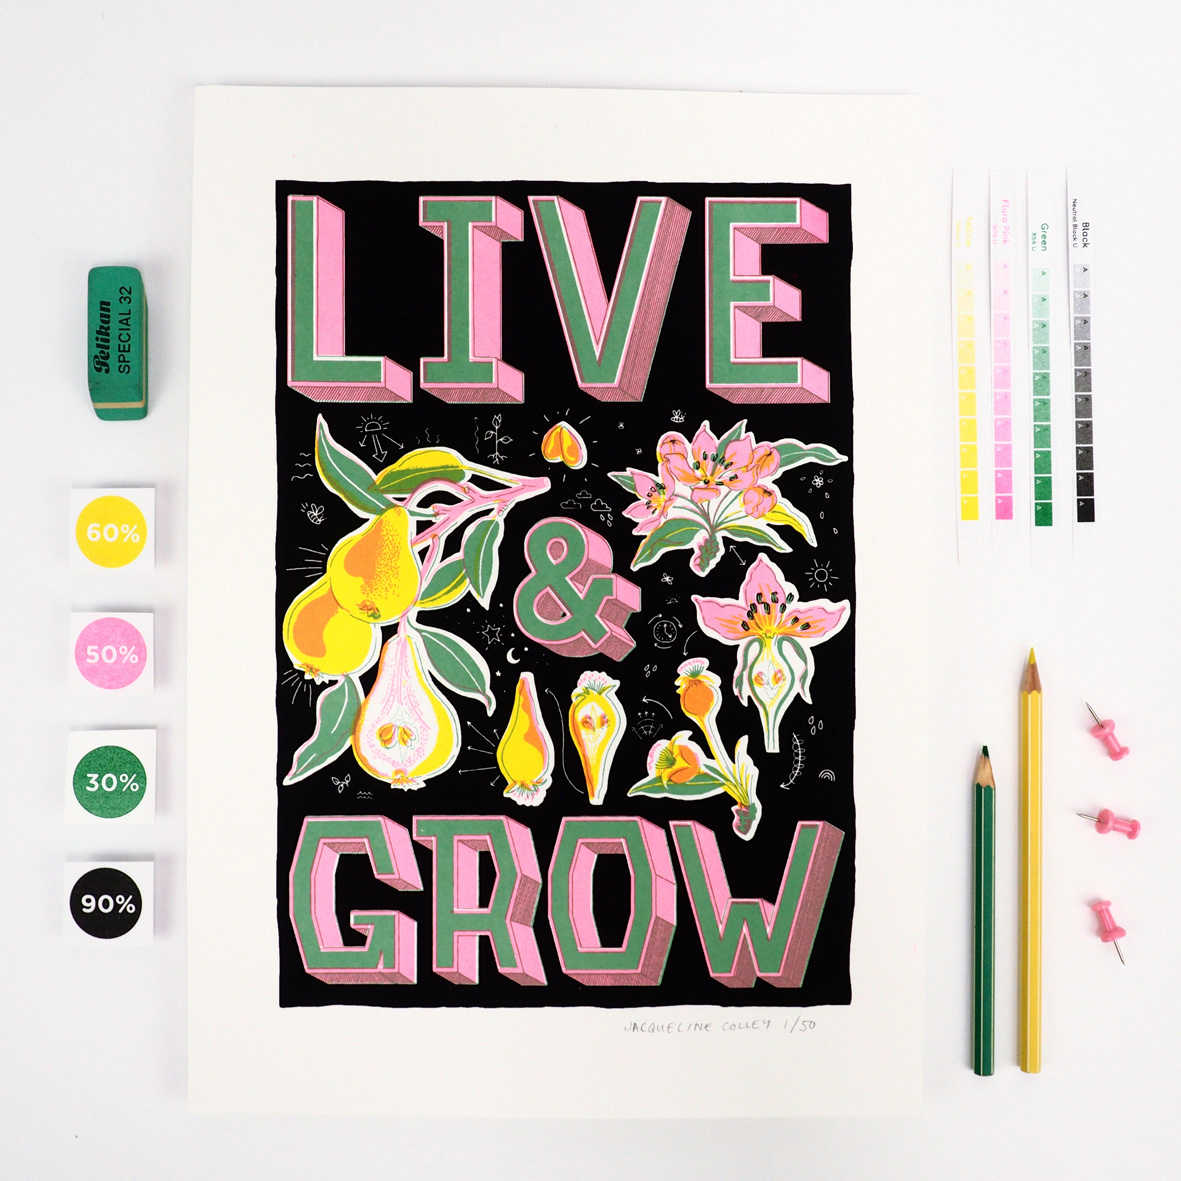 Live-and-grow-screen-print-art-for-gardeners-1sm.jpg